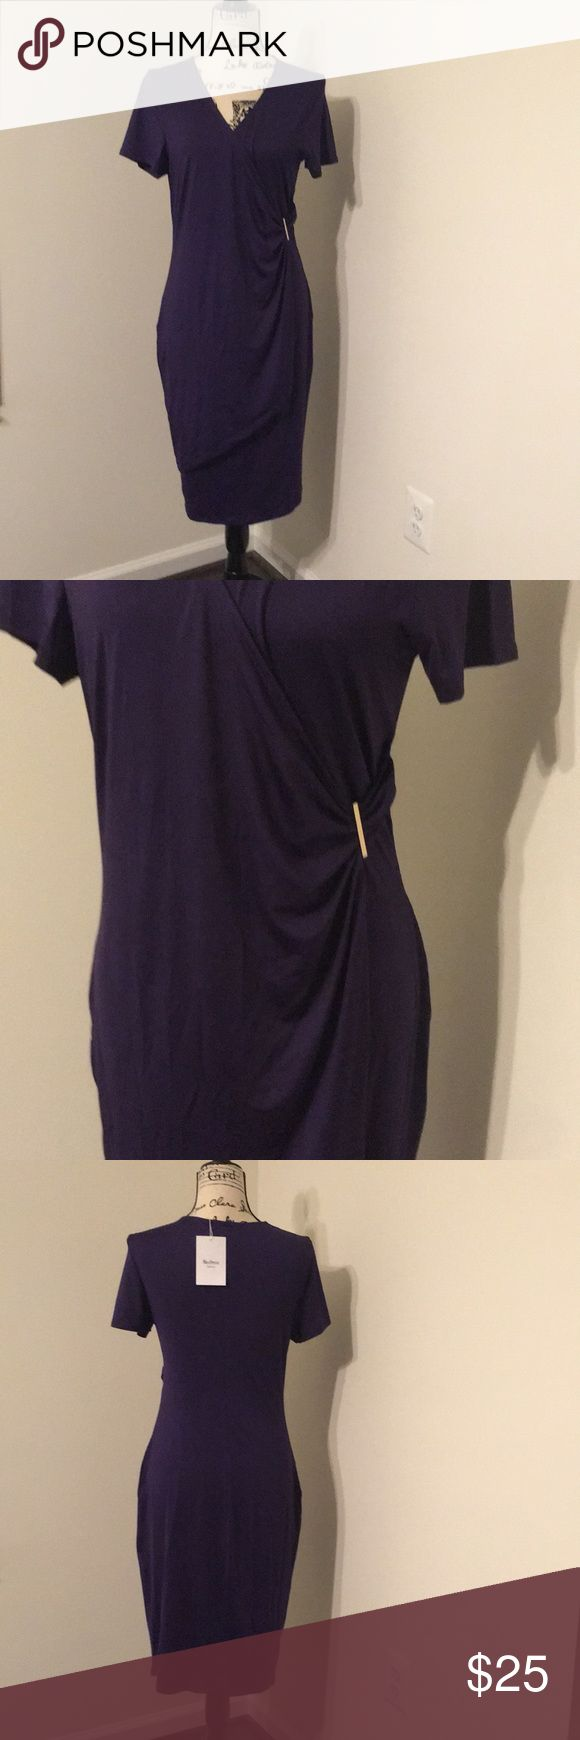 Plus Size Pullover Overlap Dress The pic is one shade darker than actual item  XL Fit US Size:14,Length:38.98 / Sleeve Length:7.28.(In inches) / Sleeve Length:20.08.(In inches) .(In inches) Bust 41.34 / Hips 44.49 / Waist 33.46 / Shoulder Width 15.94  Style: Brief Material: Polyester,Spandex Silhouette: Sheath Dresses Length: Knee-Length Neckline: V-Neck Sleeve Length: Short Sleeves Pattern Type: Solid Color With Belt: No Season: Summer Dresses Midi